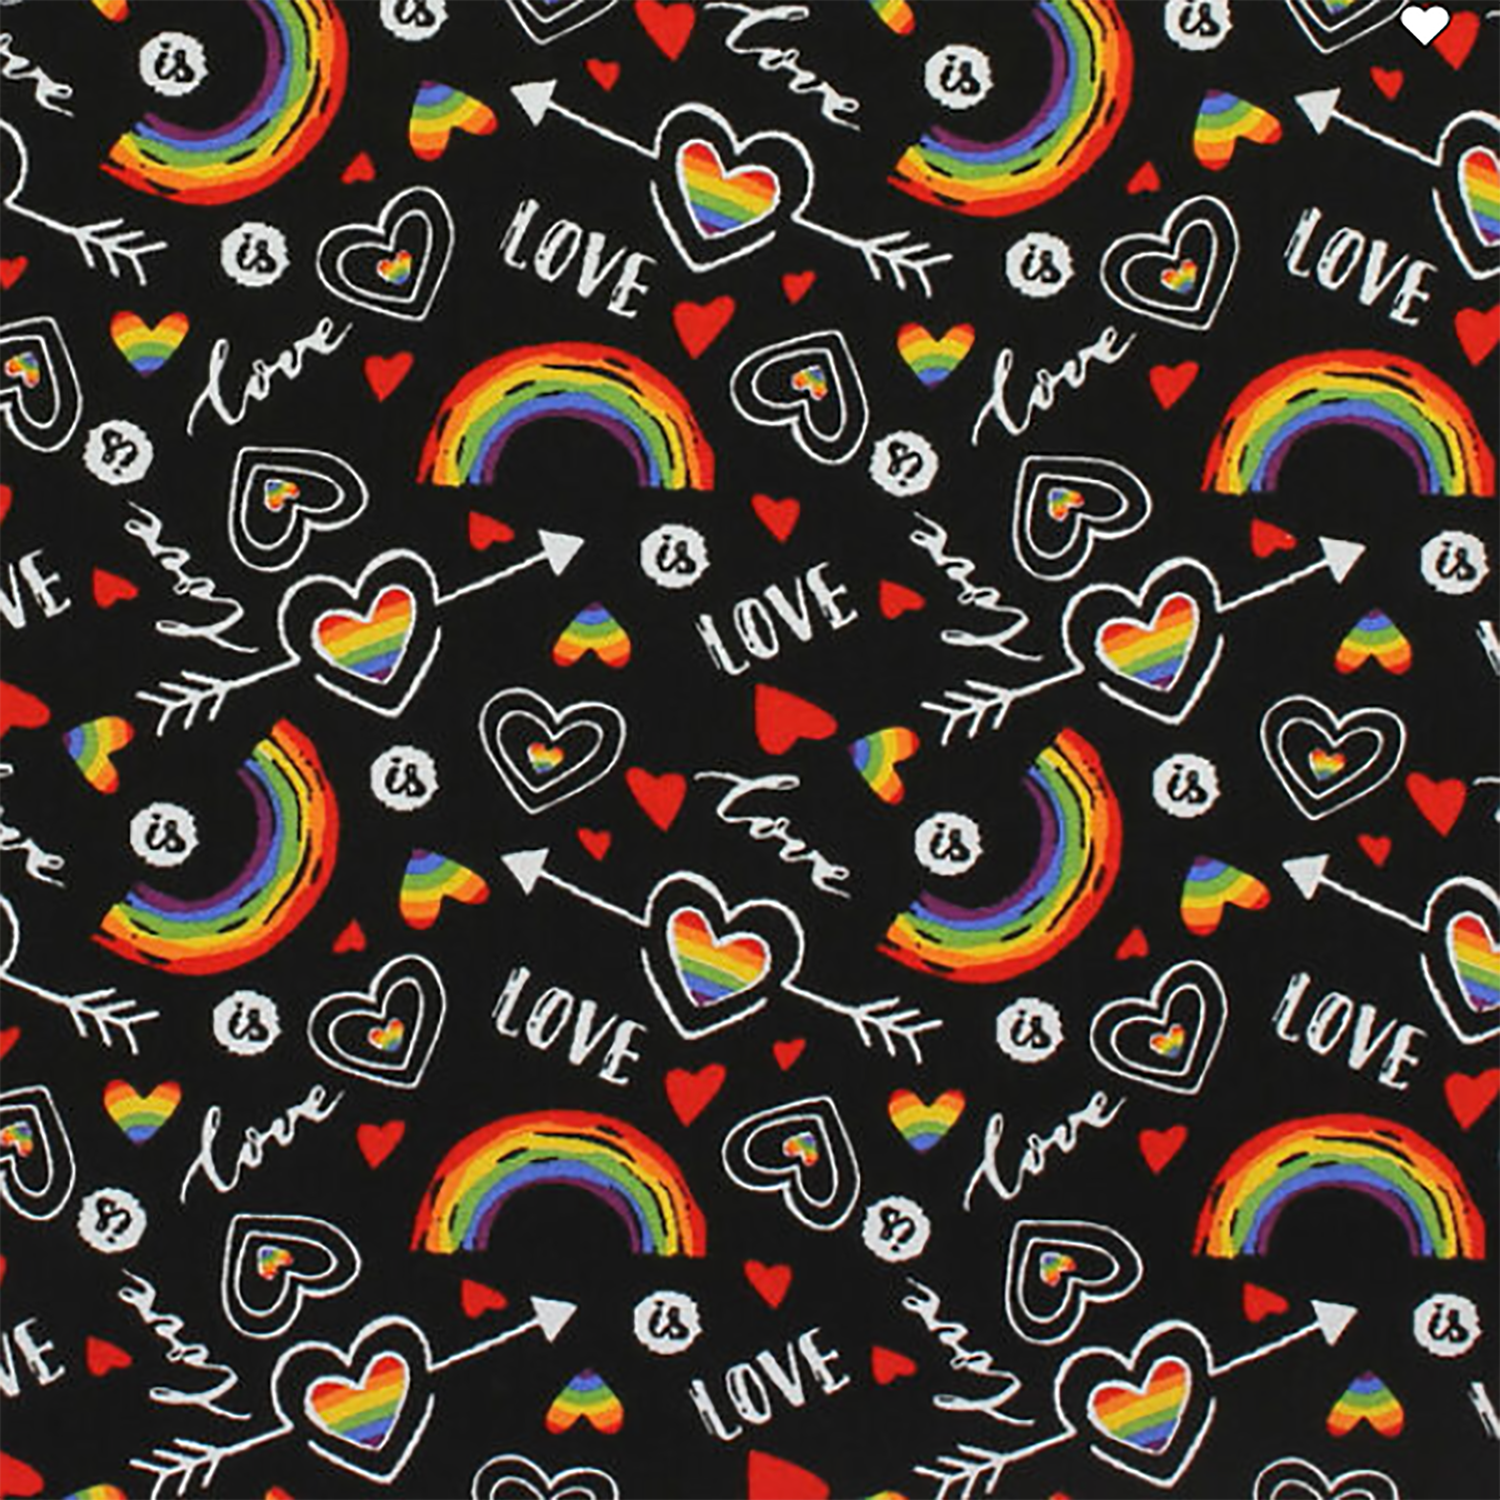 Love Wins Dog Paws Adult T-Shirt + FREE Love is Love Pride Face Mask